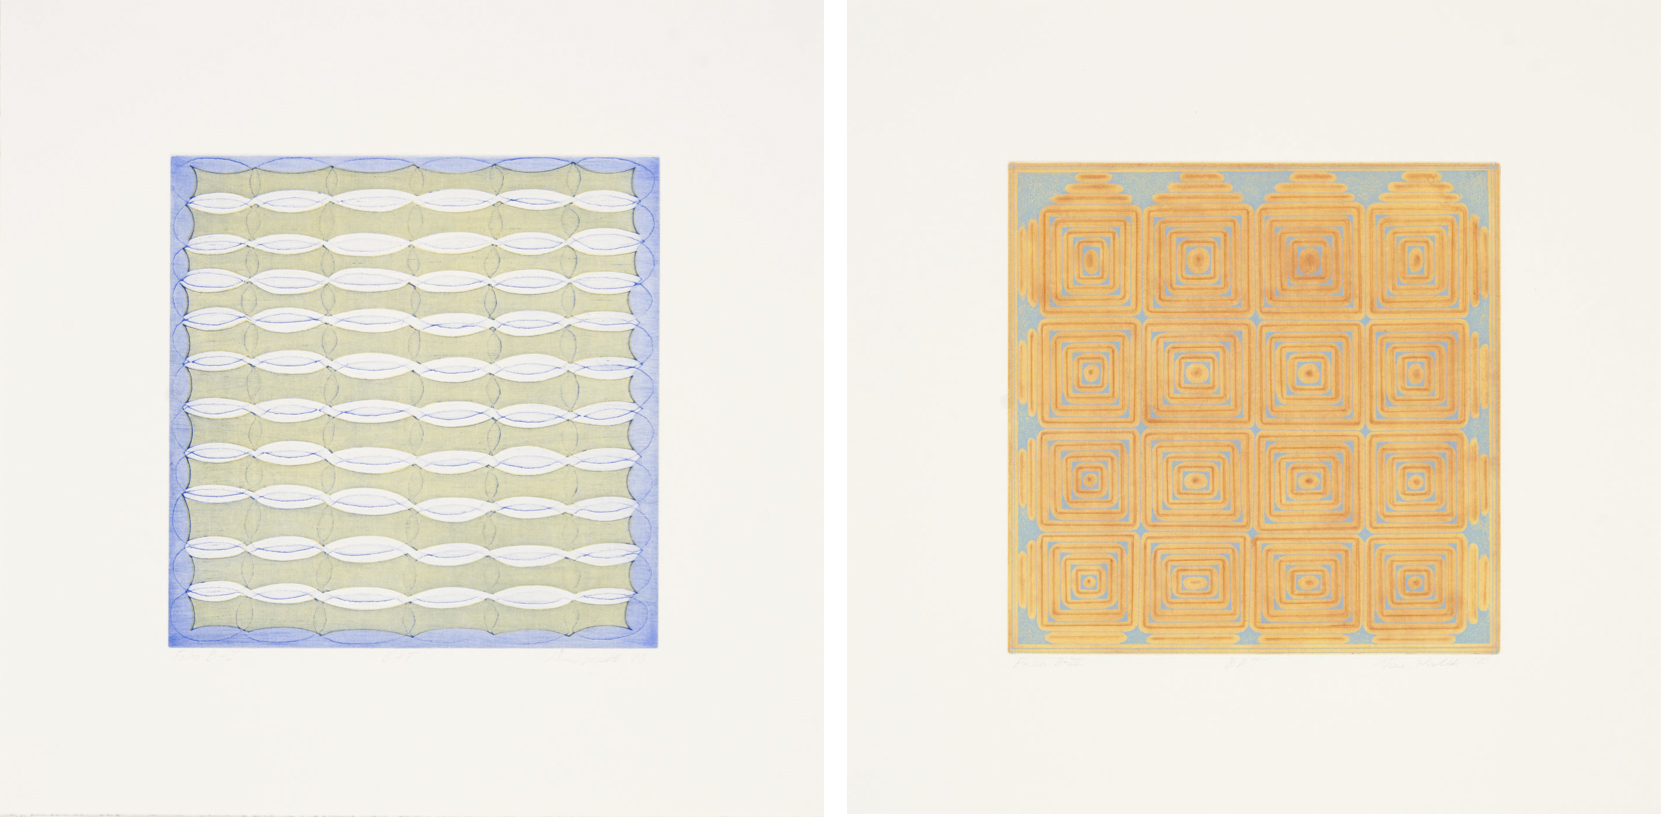 Dan Walsh, Folio B (Plate I and III), 2010